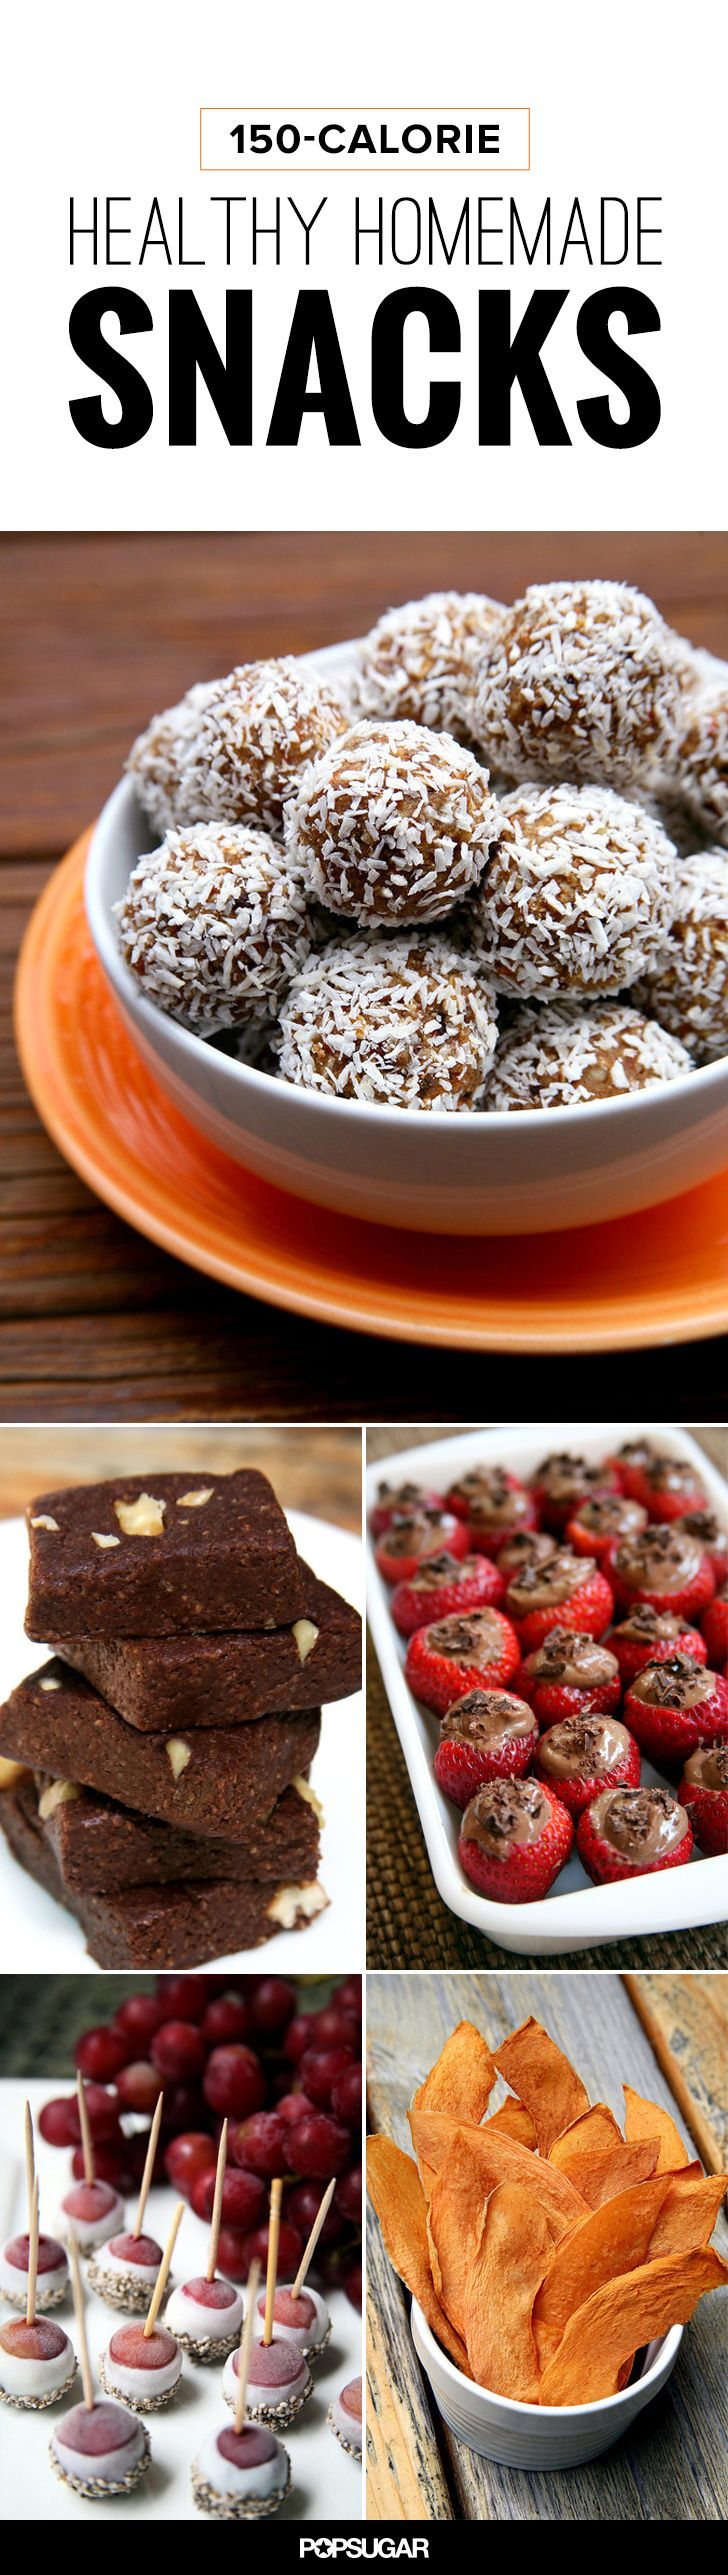 50+ healthy snack recipes, all under 150 calories. Cherry chocolate chip ice cream, chocolate-mousse-filled strawberries, dried cantaloupe, and no-bake brownies.